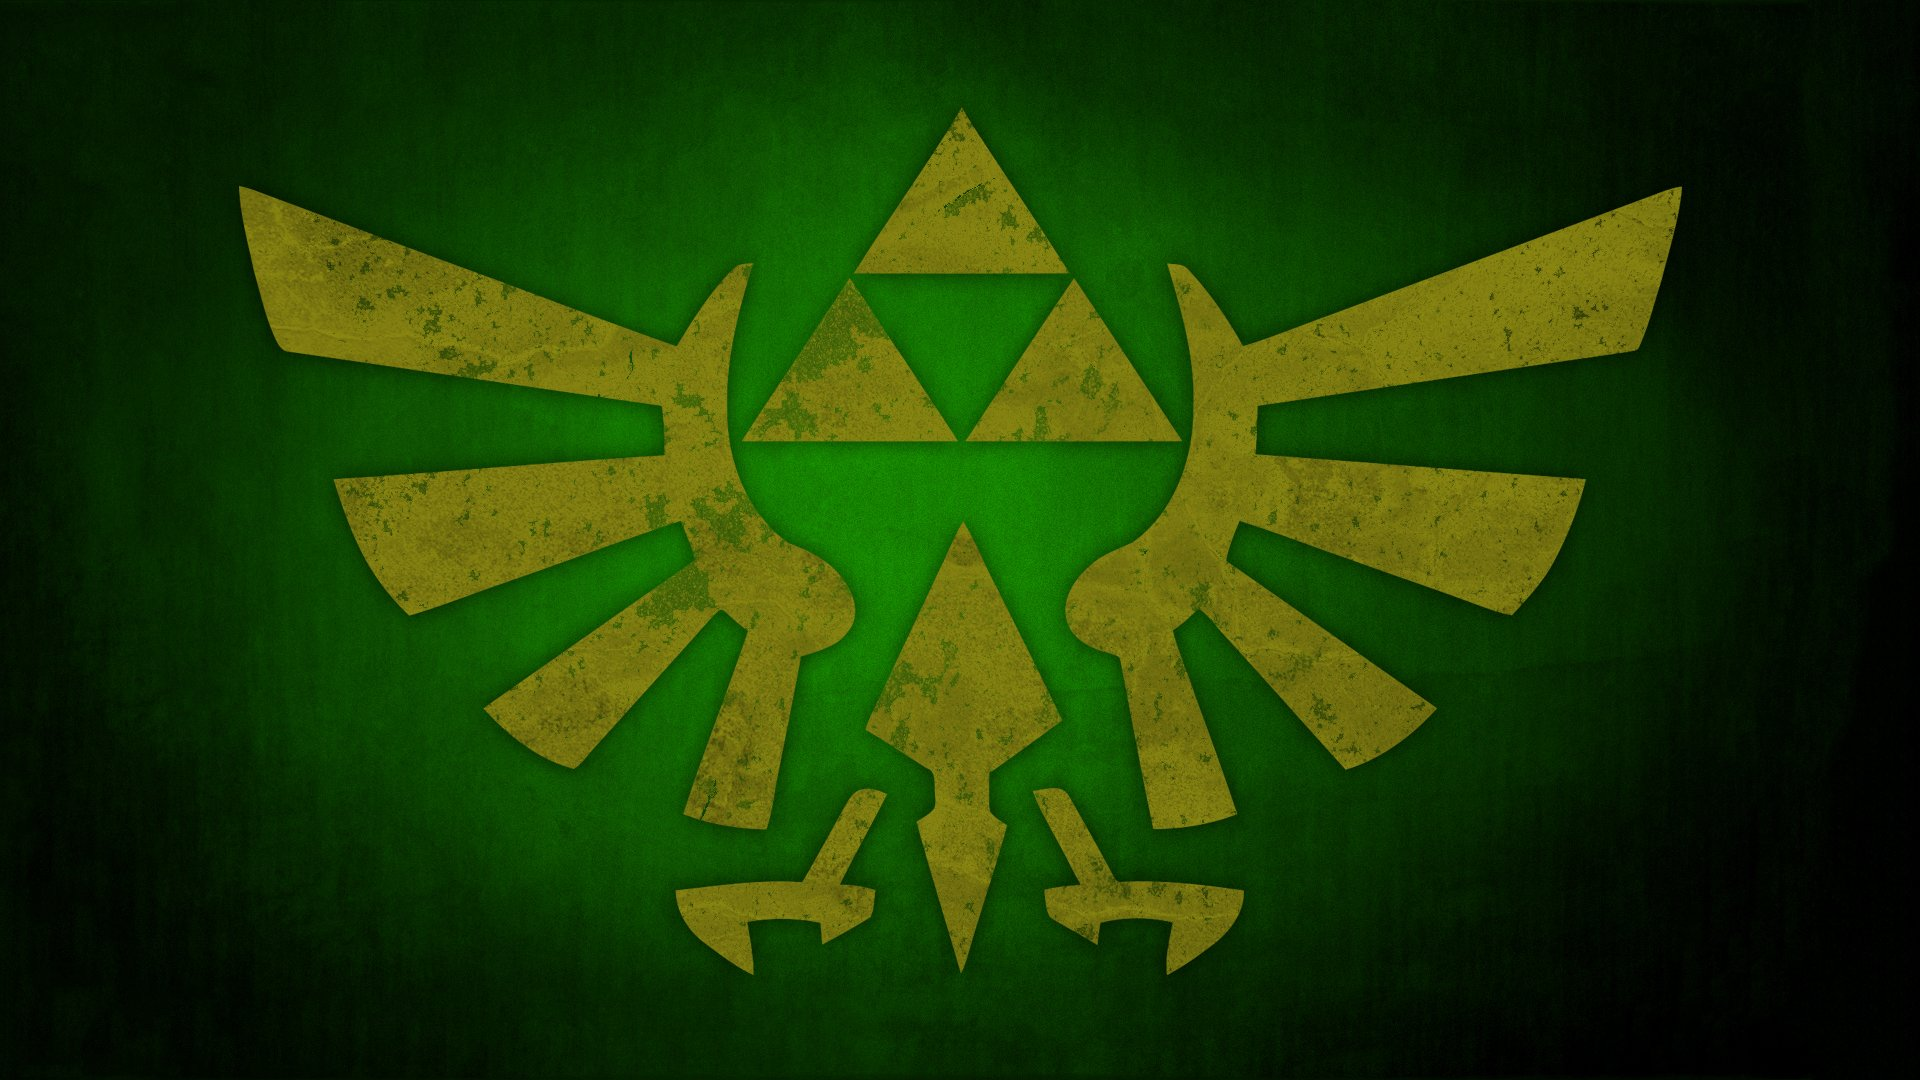 Hyrule-Crest-wallpaper-wp3407138